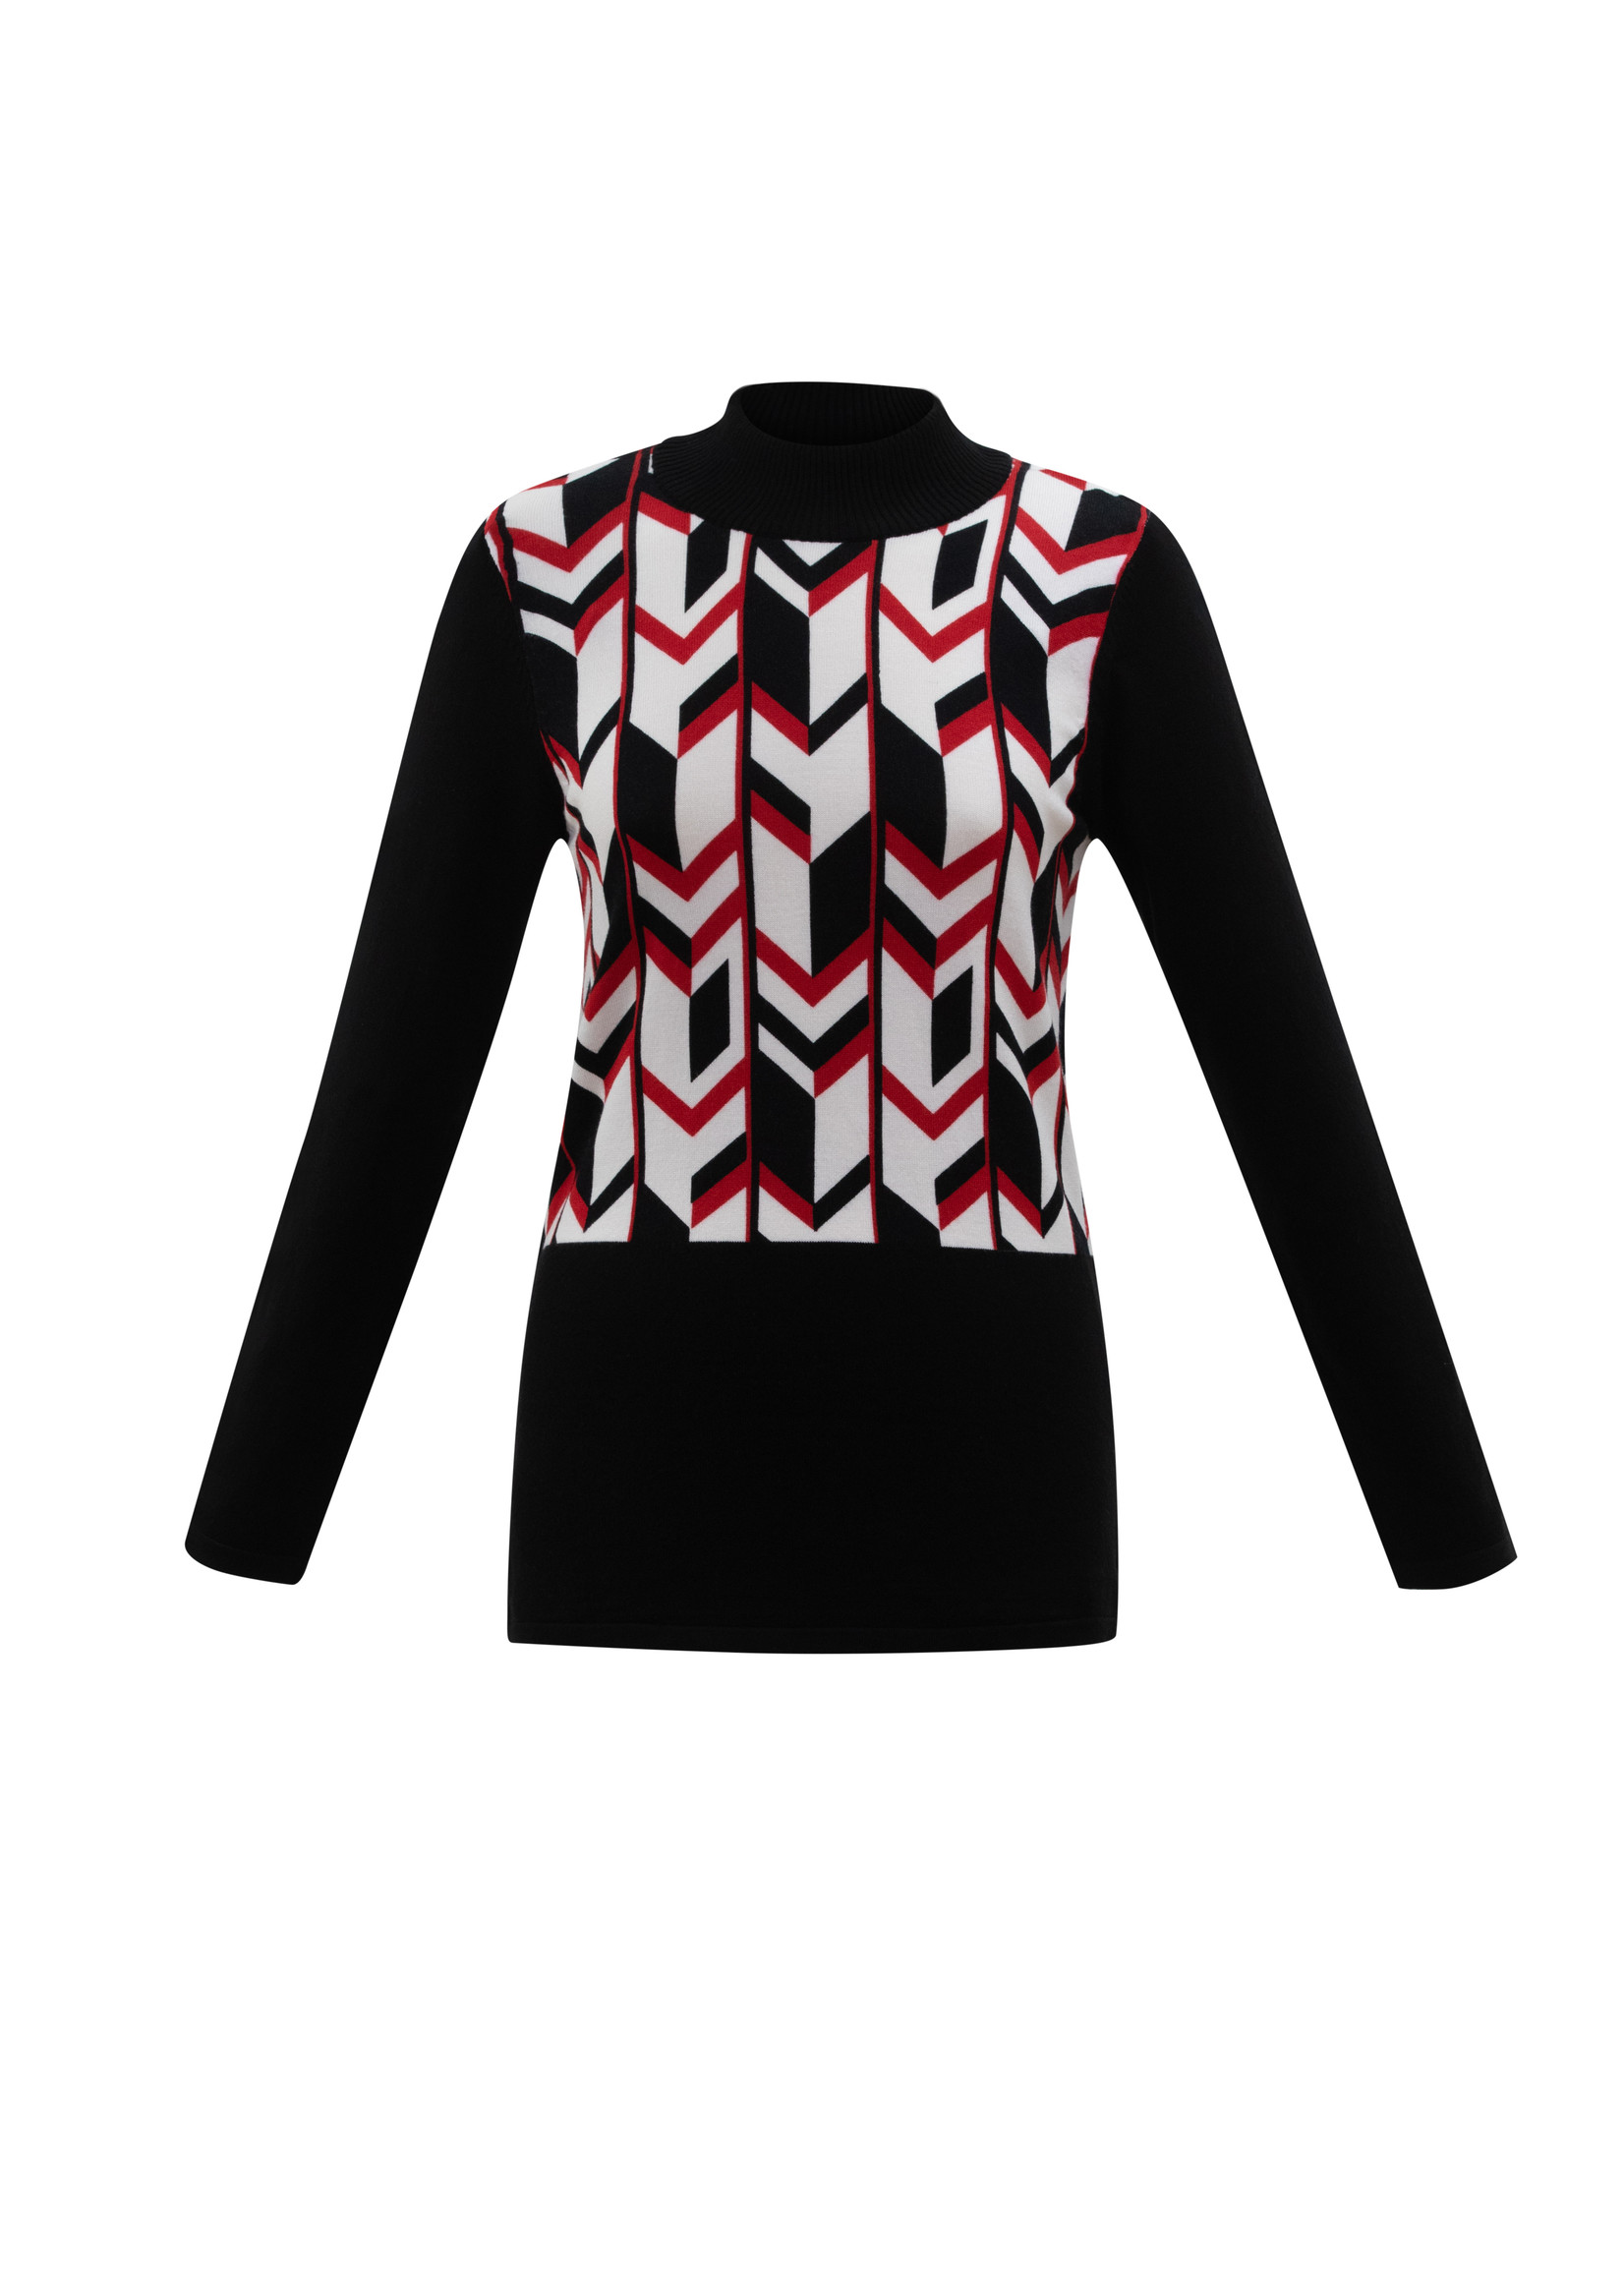 Marble Marble Patterned Mock Neck Sweater